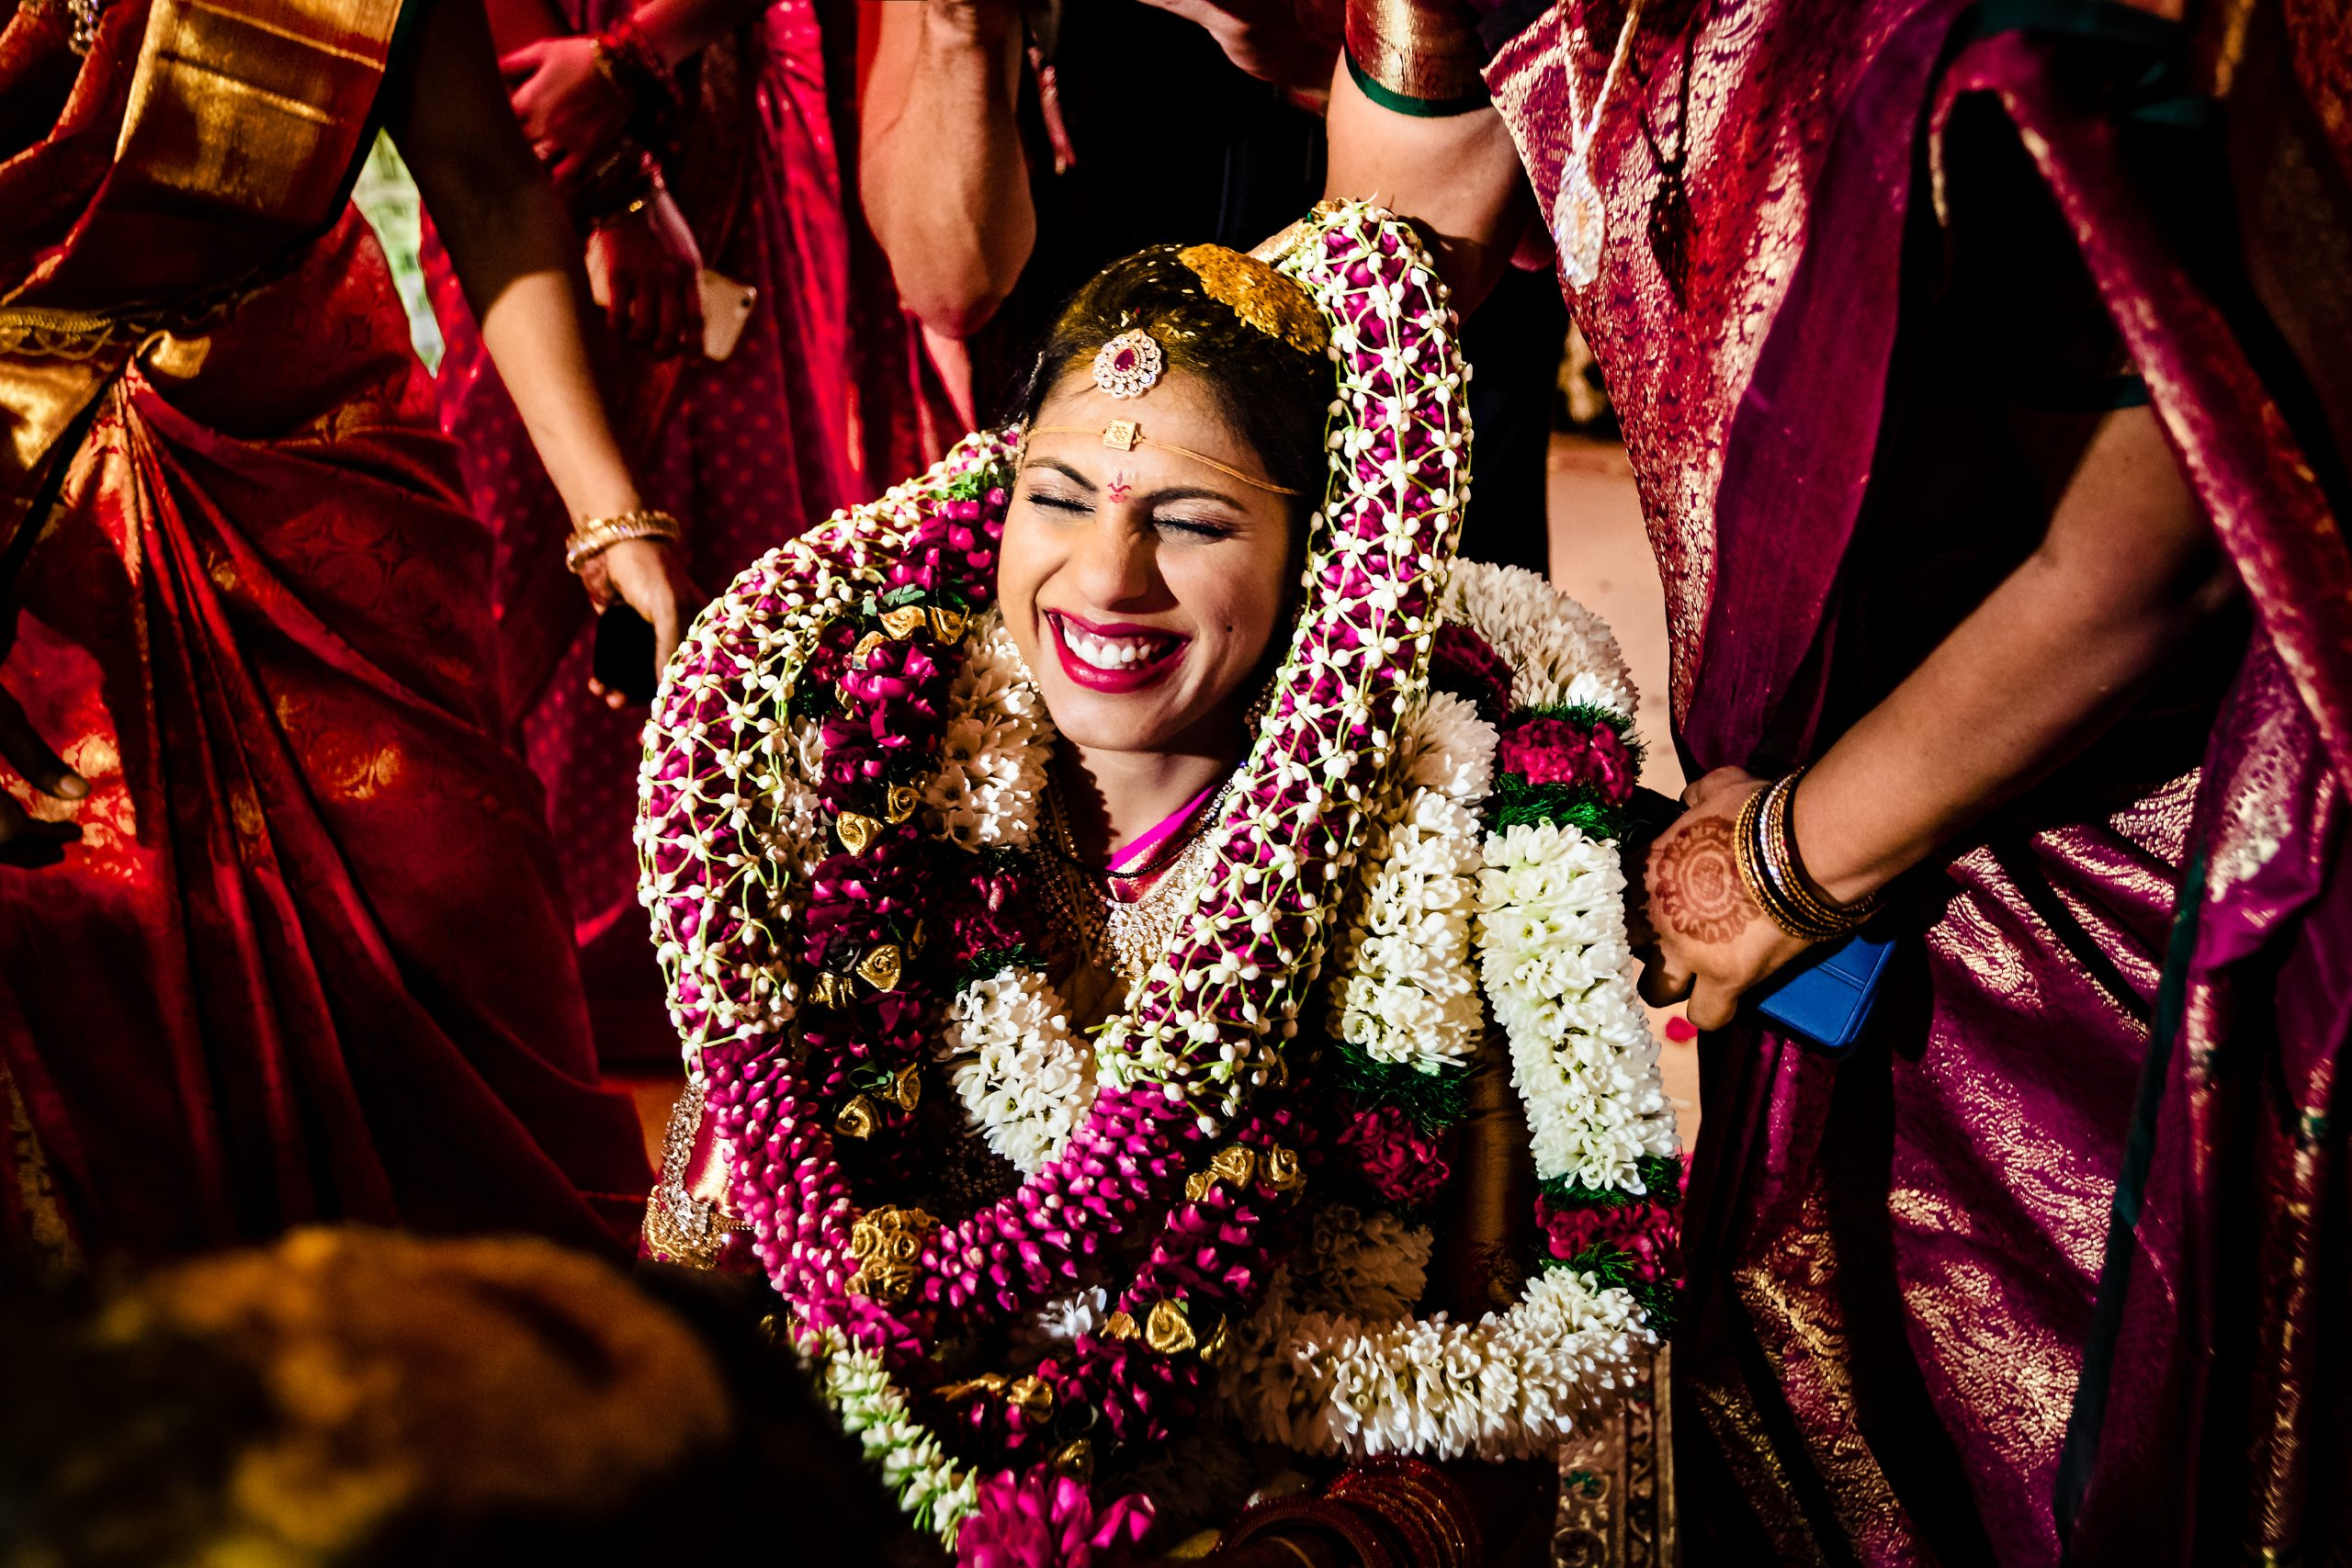 Smiling Indian bride with many colorful garlands